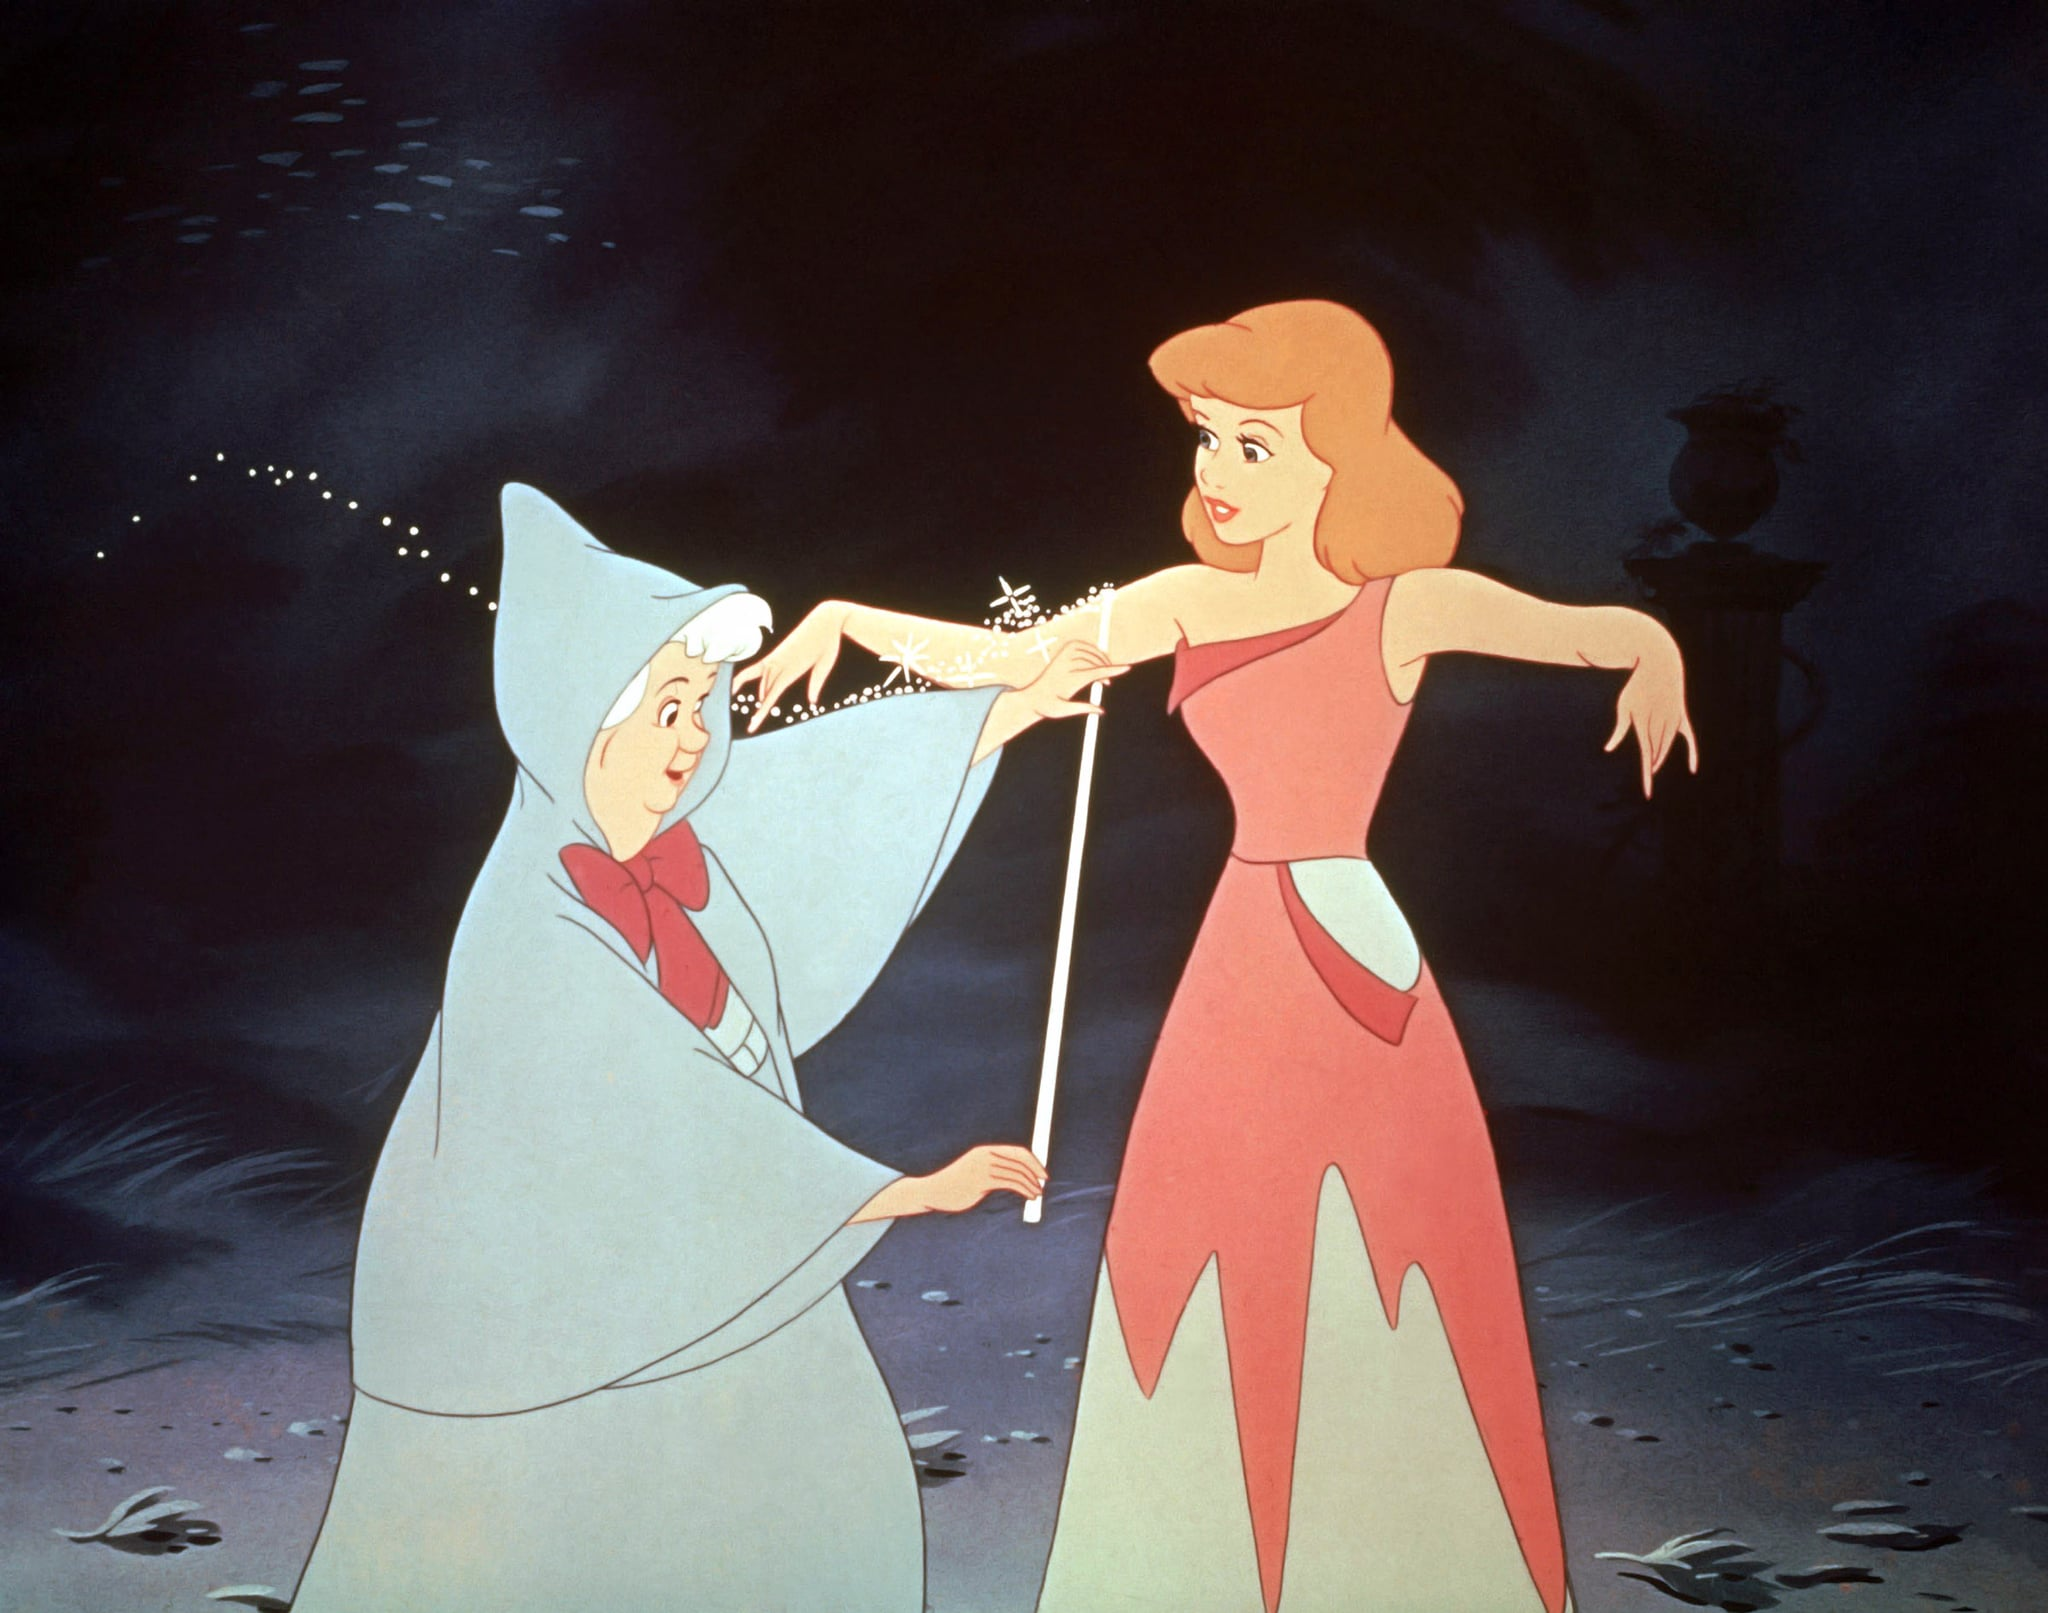 CINDERELLA, Fairy Godmother, Cinderella, 1950, Walt Disney Pictures/courtesy Everett Collection